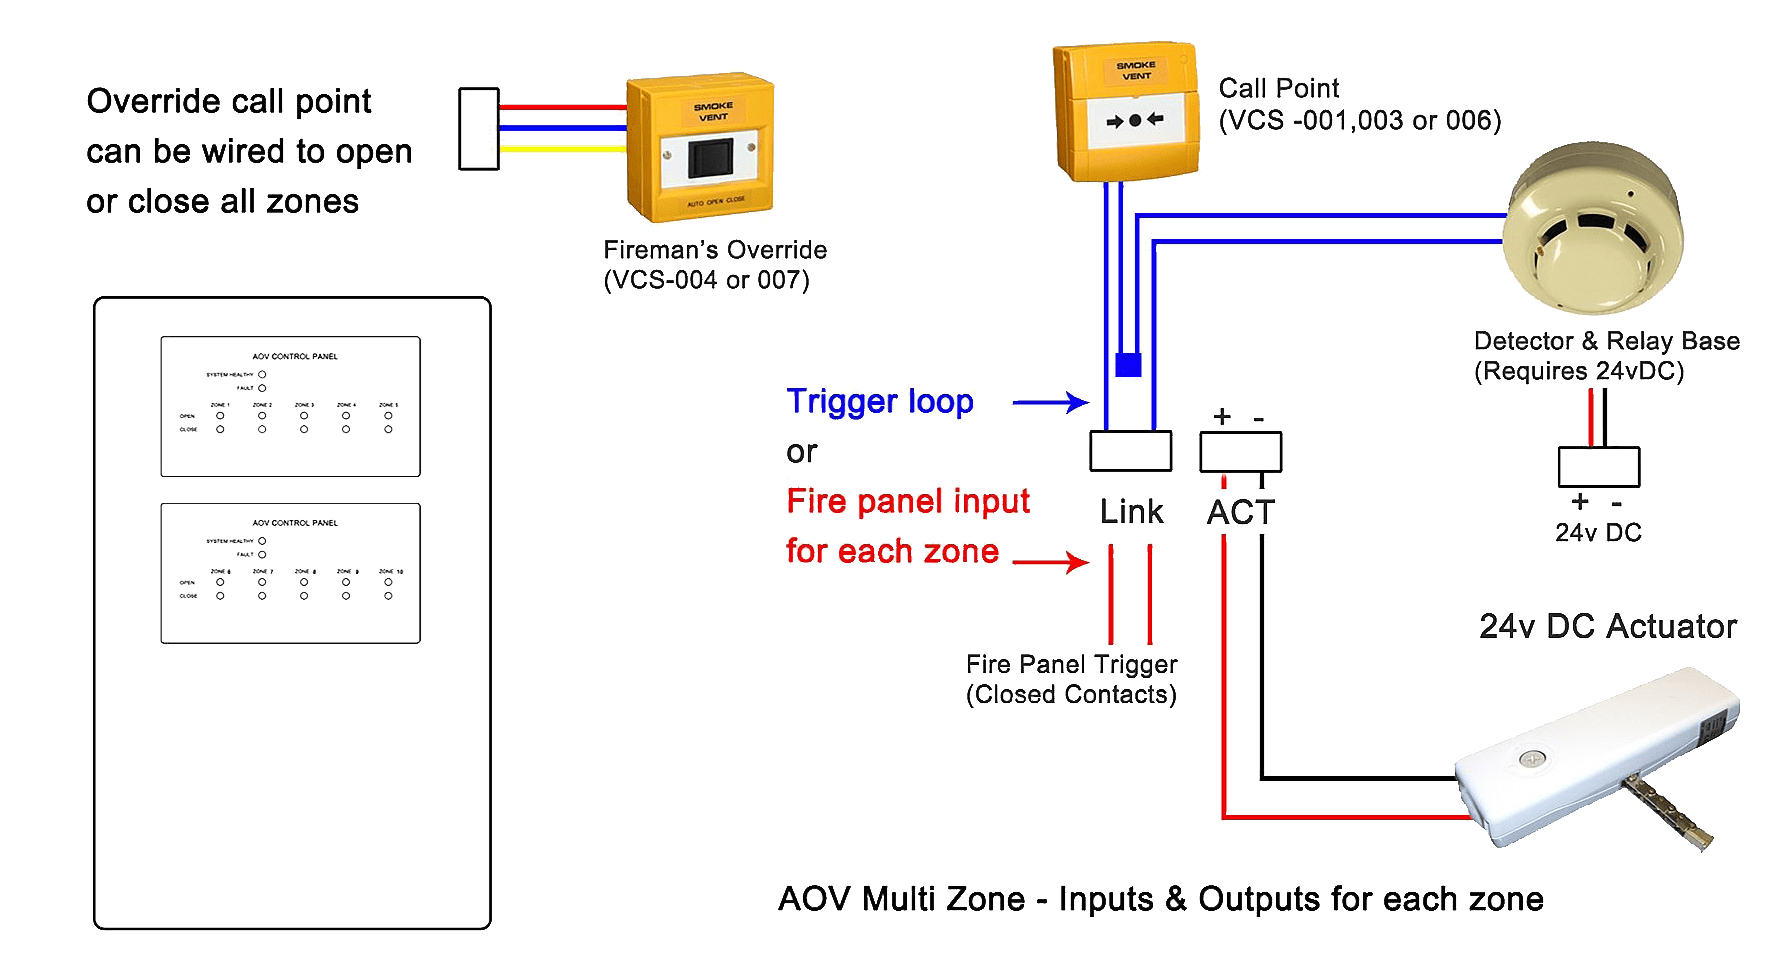 hight resolution of aov control panel schematics for multi zone aov